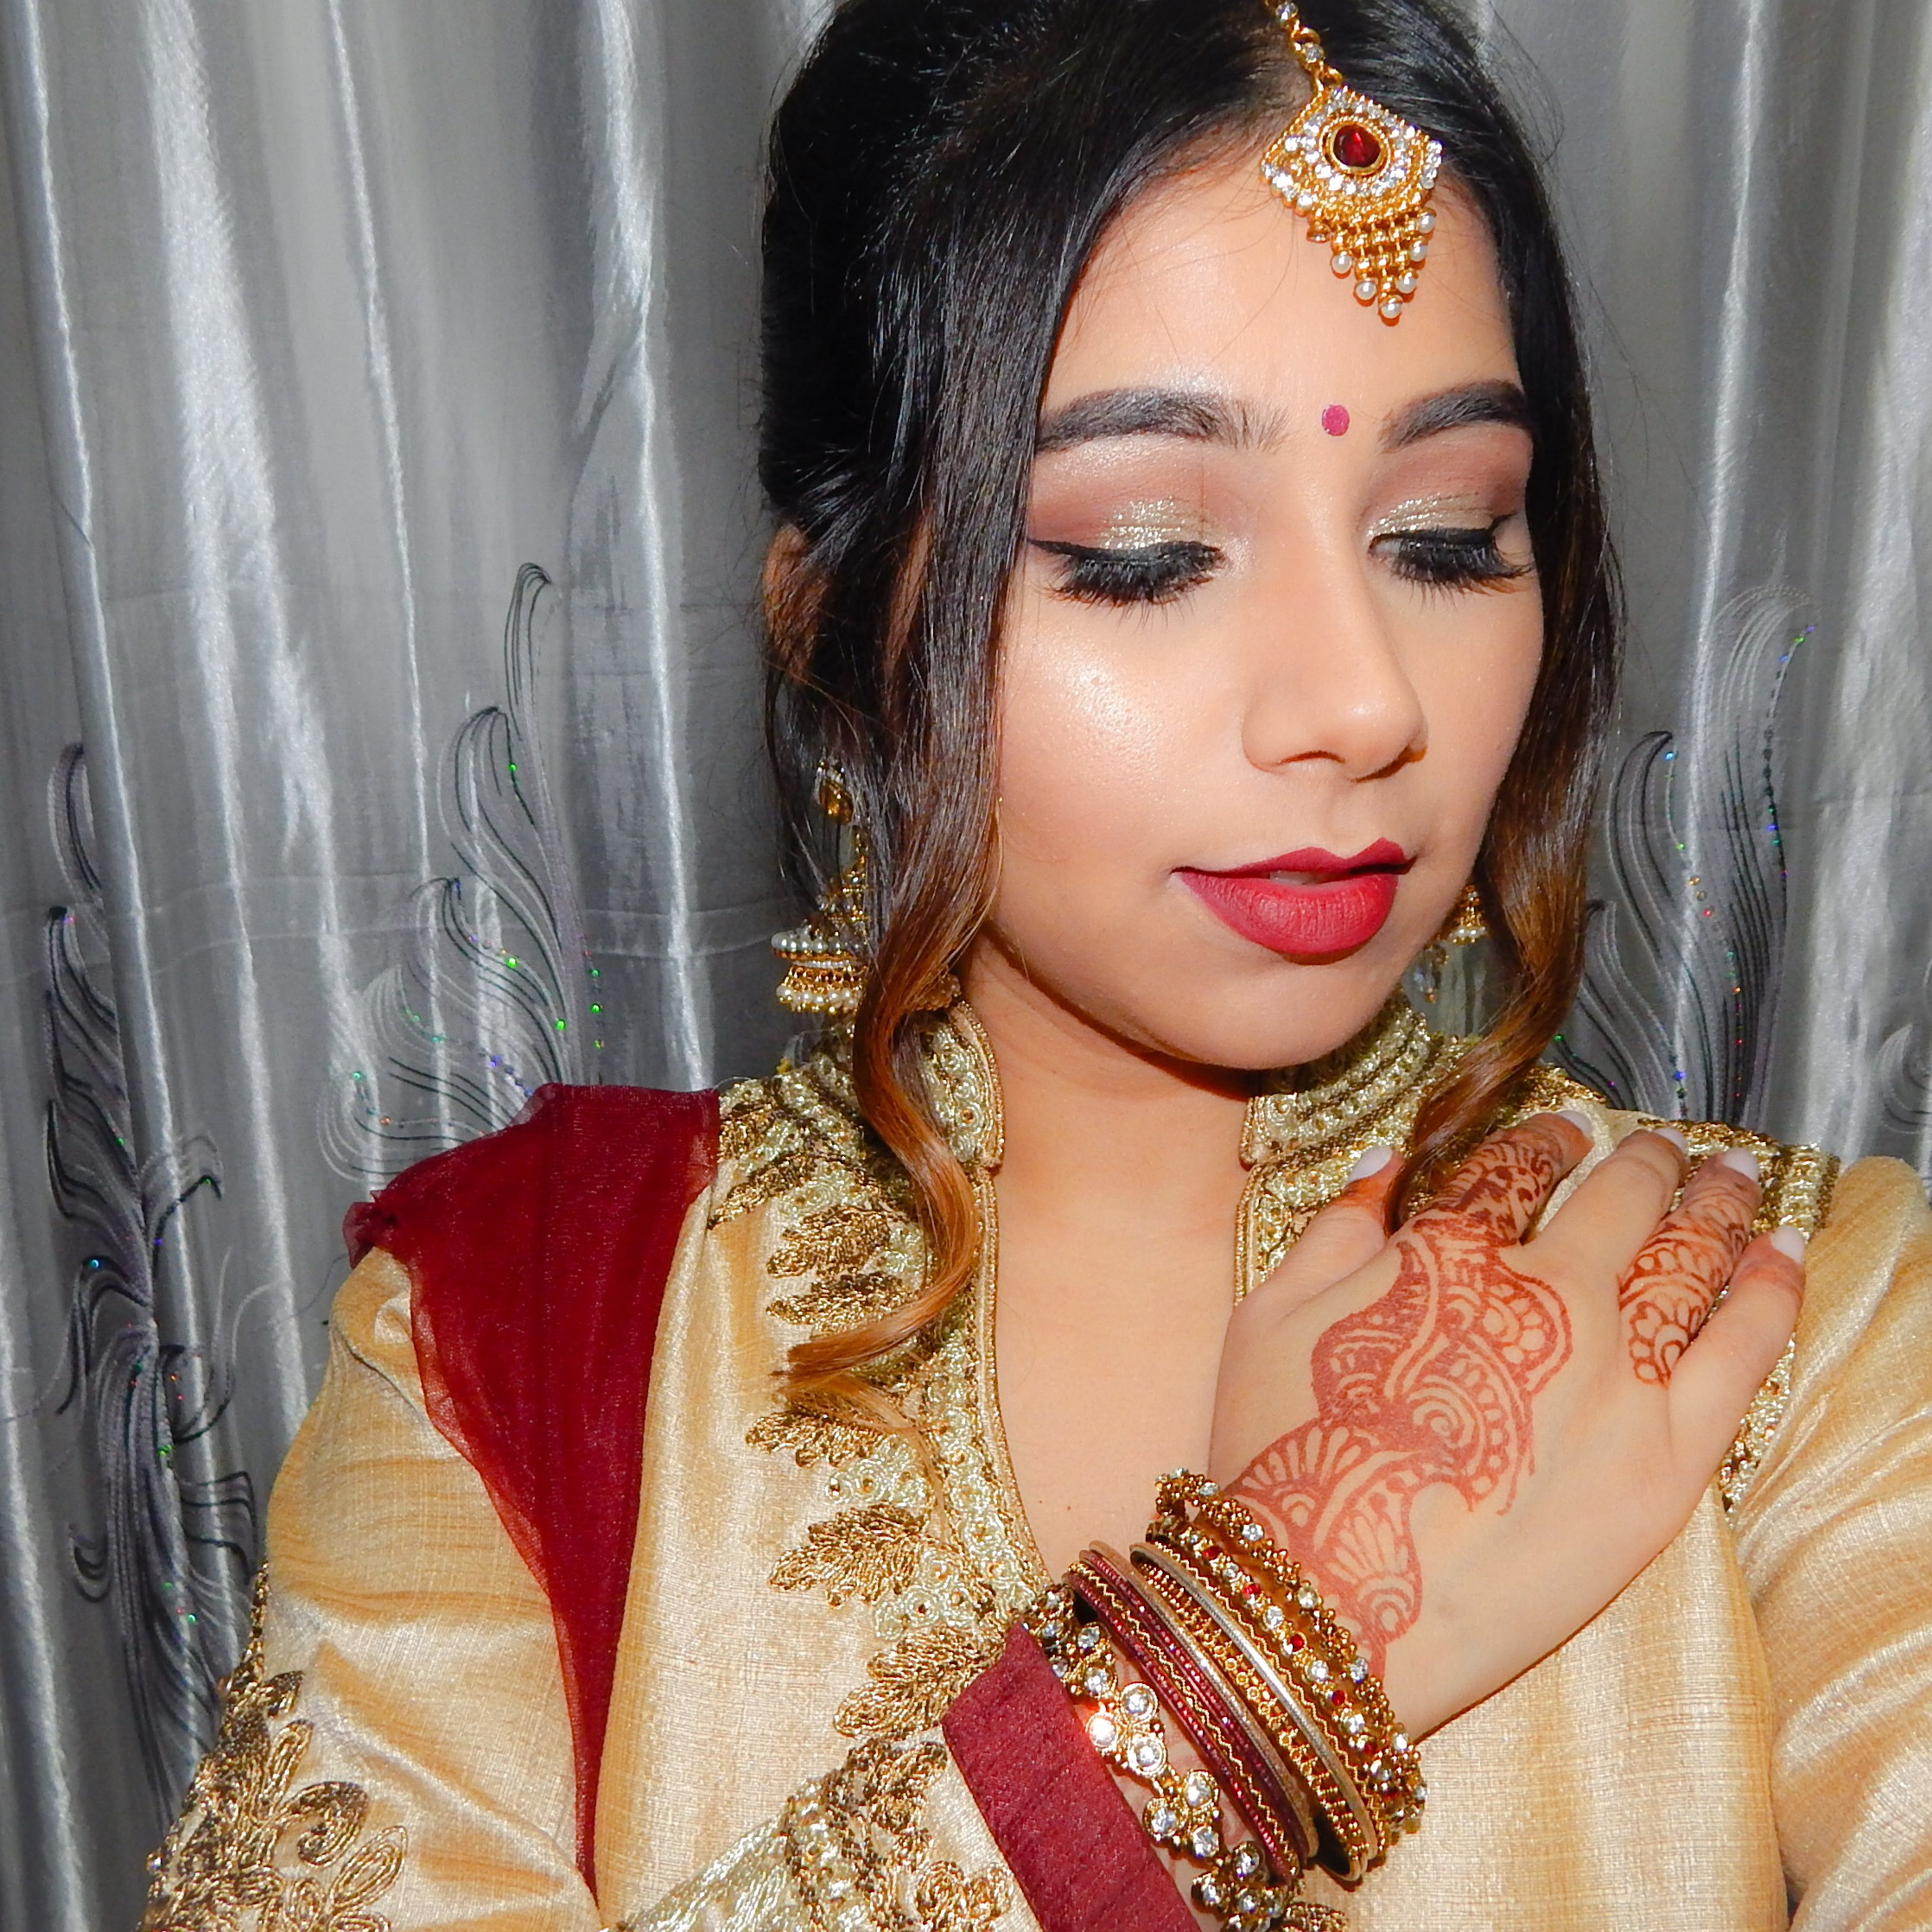 Makeup Ideas For Wedding Day: Wedding Day – Indian Wedding – DII BLOGS